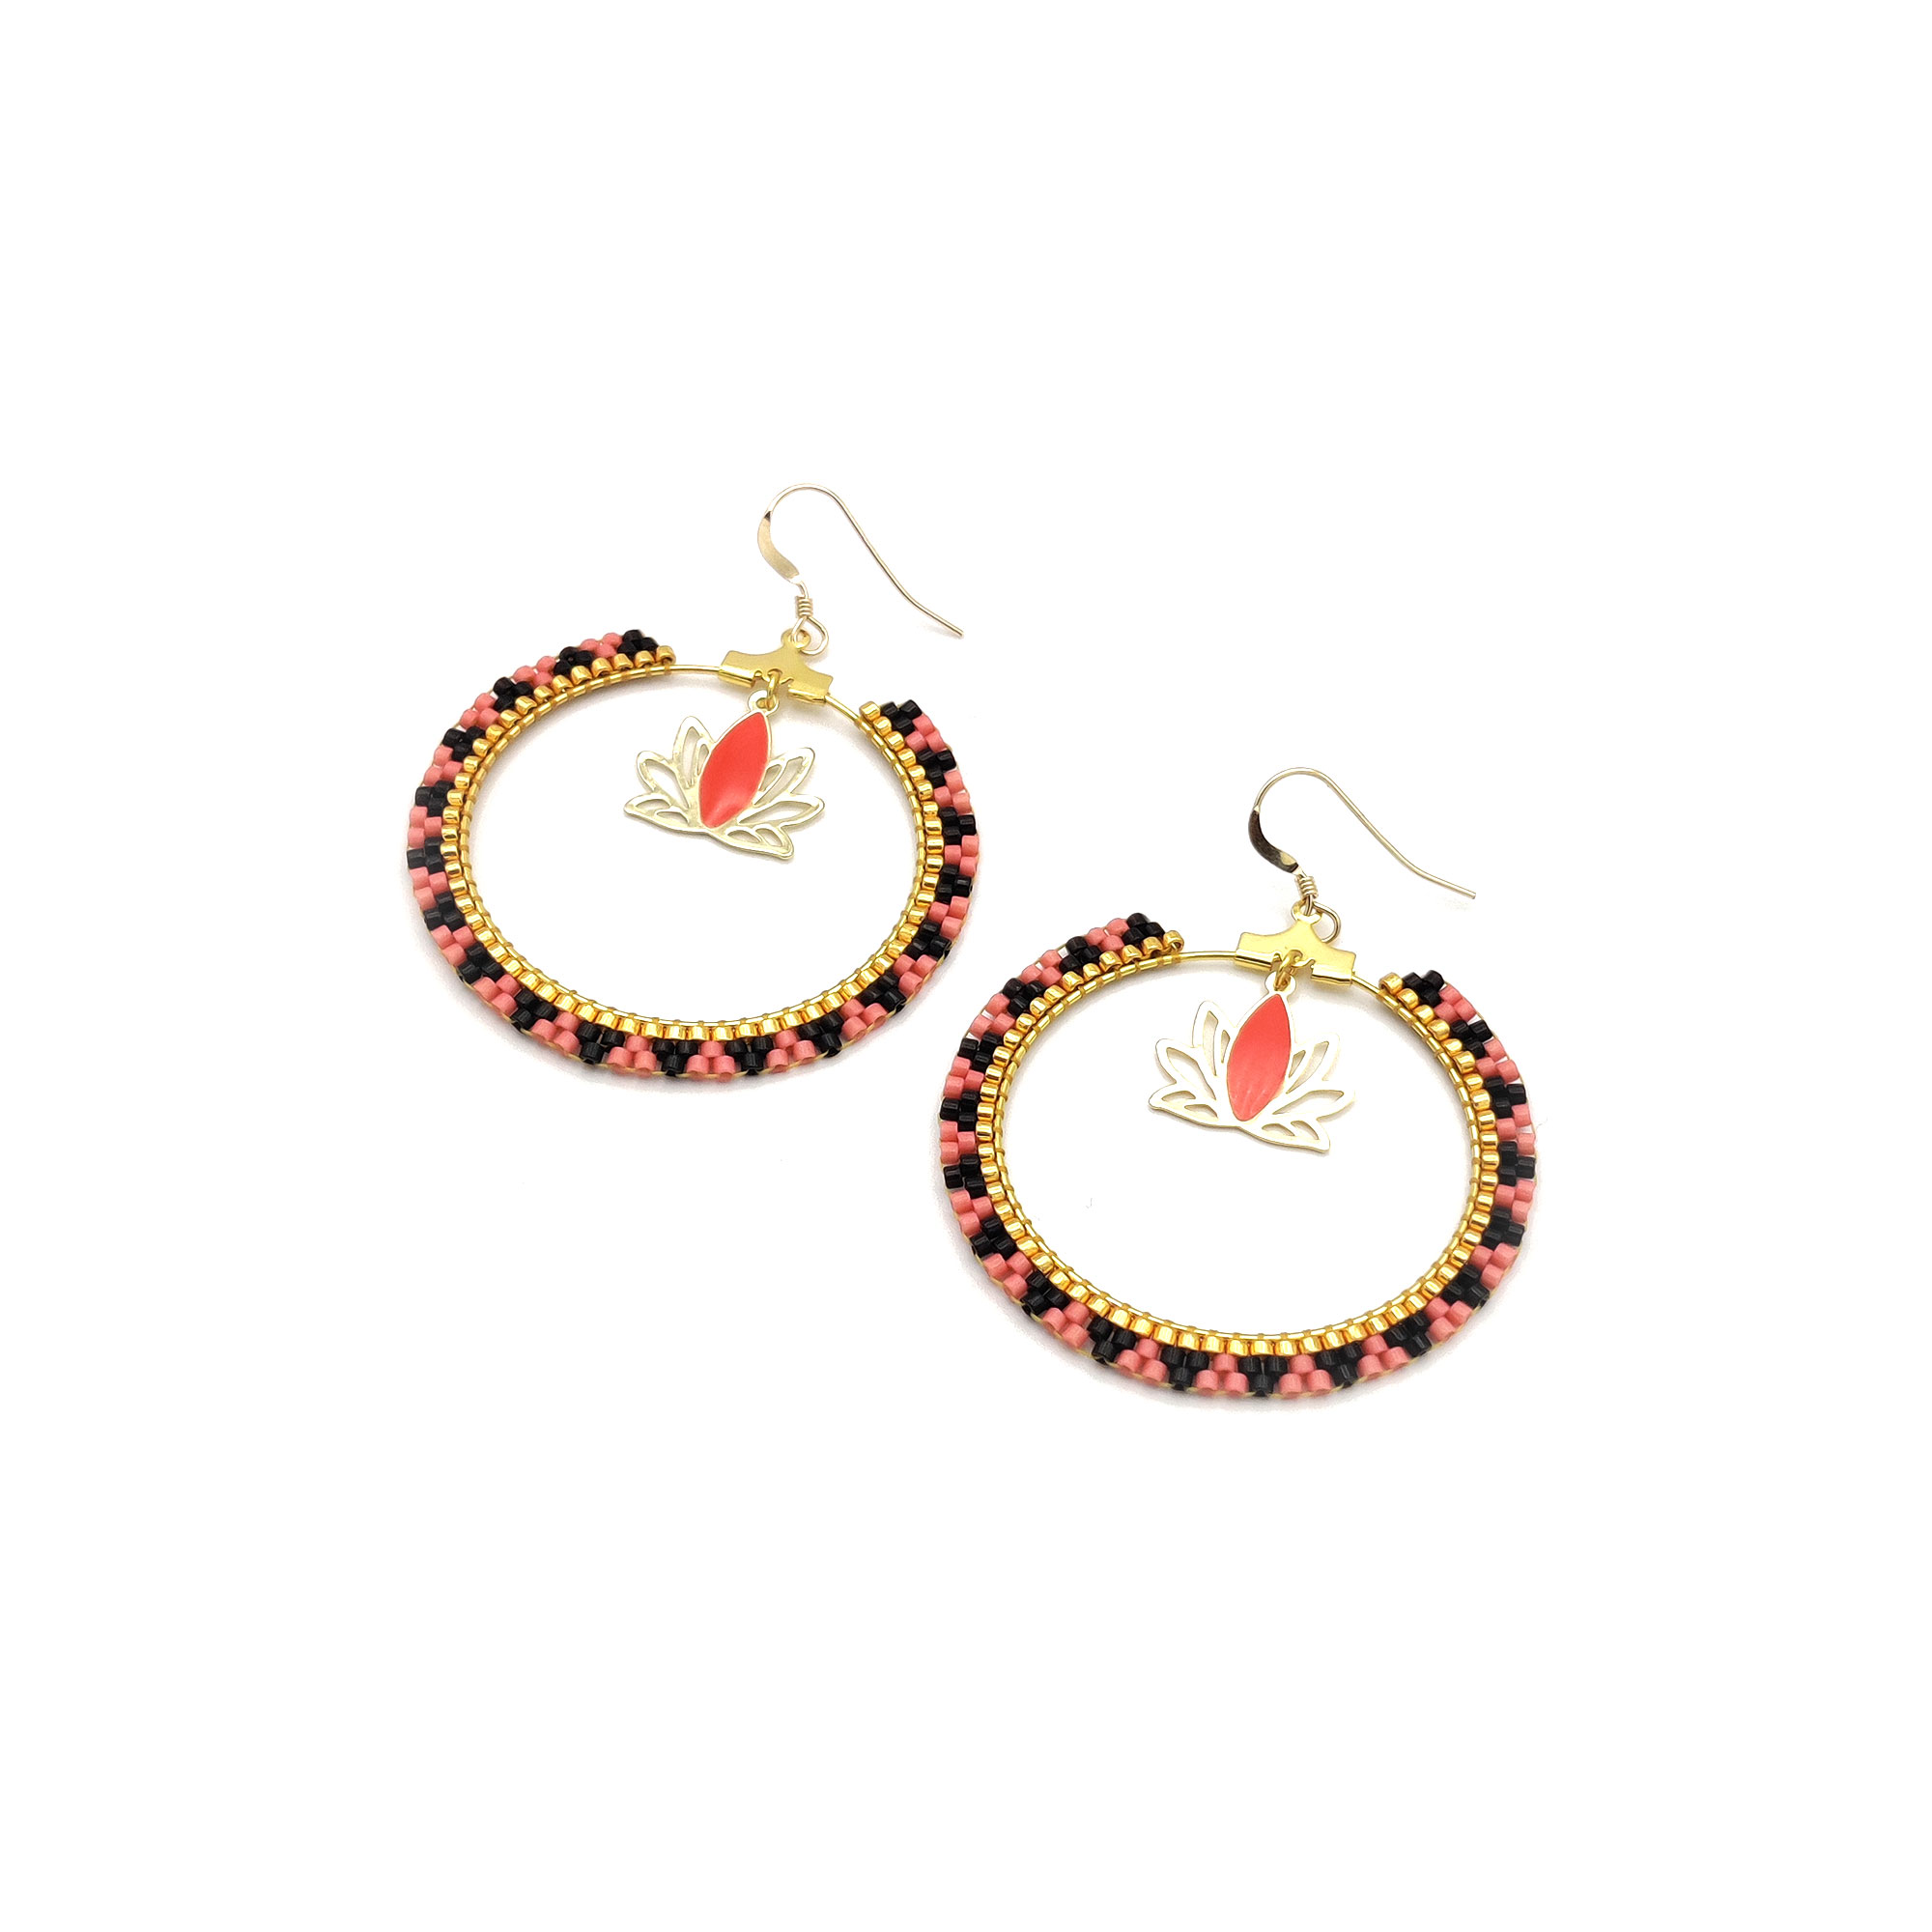 Boucles d'oreilles Miyuki Lotus - Watermelon, Noir & Doré - Crochets Gold Filled